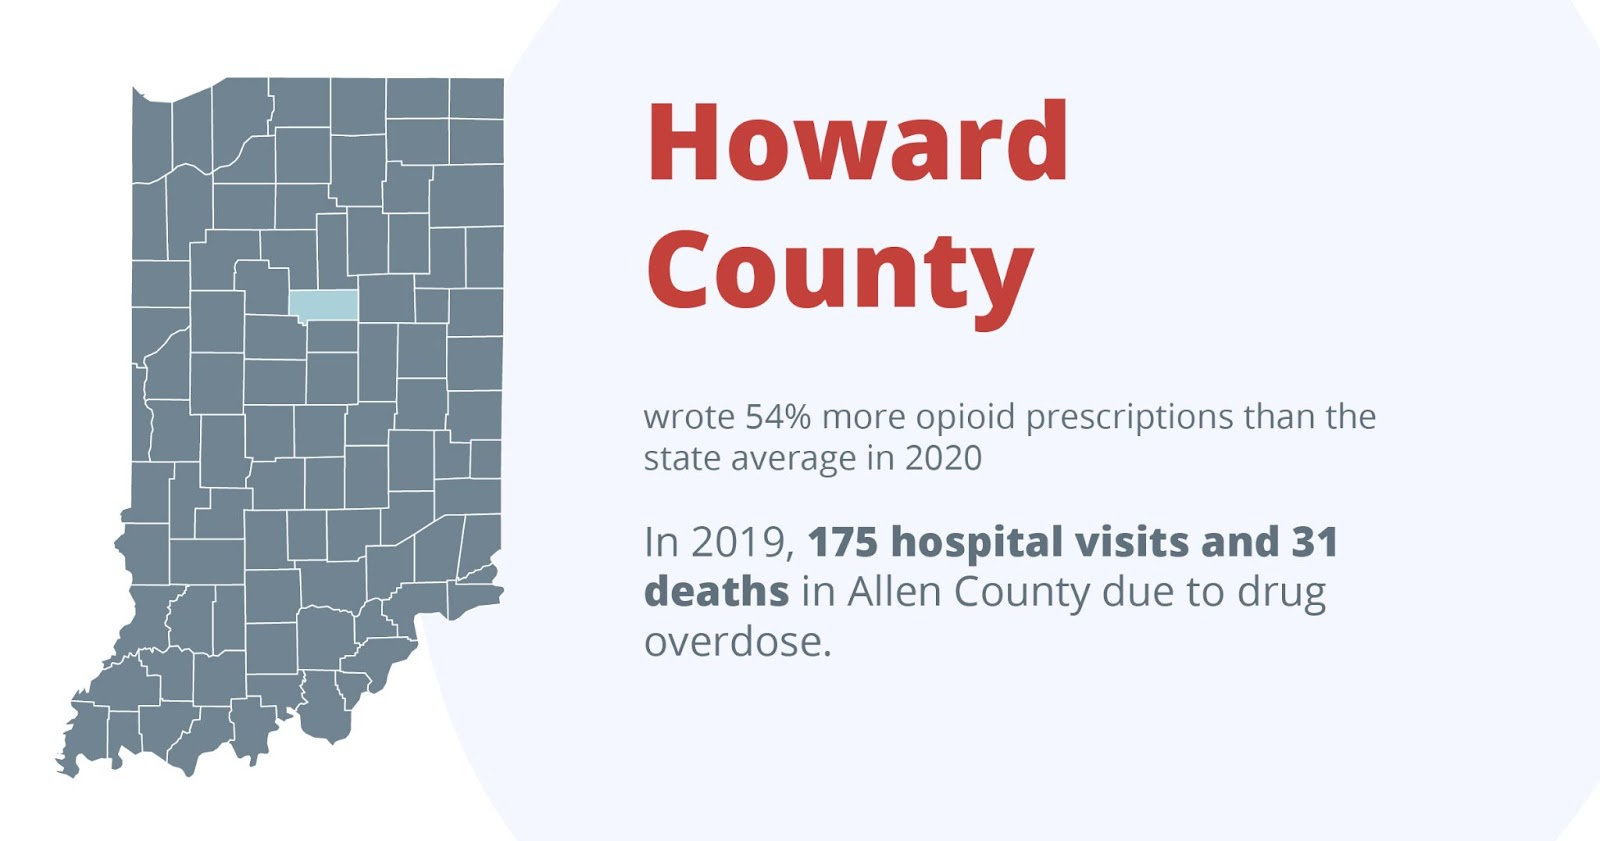 Howard county wrote 54% more opioid prescriptions than the state average in 2020. In 2019, 175 hospital visits and 31 deaths in howard county due to drug overdose.